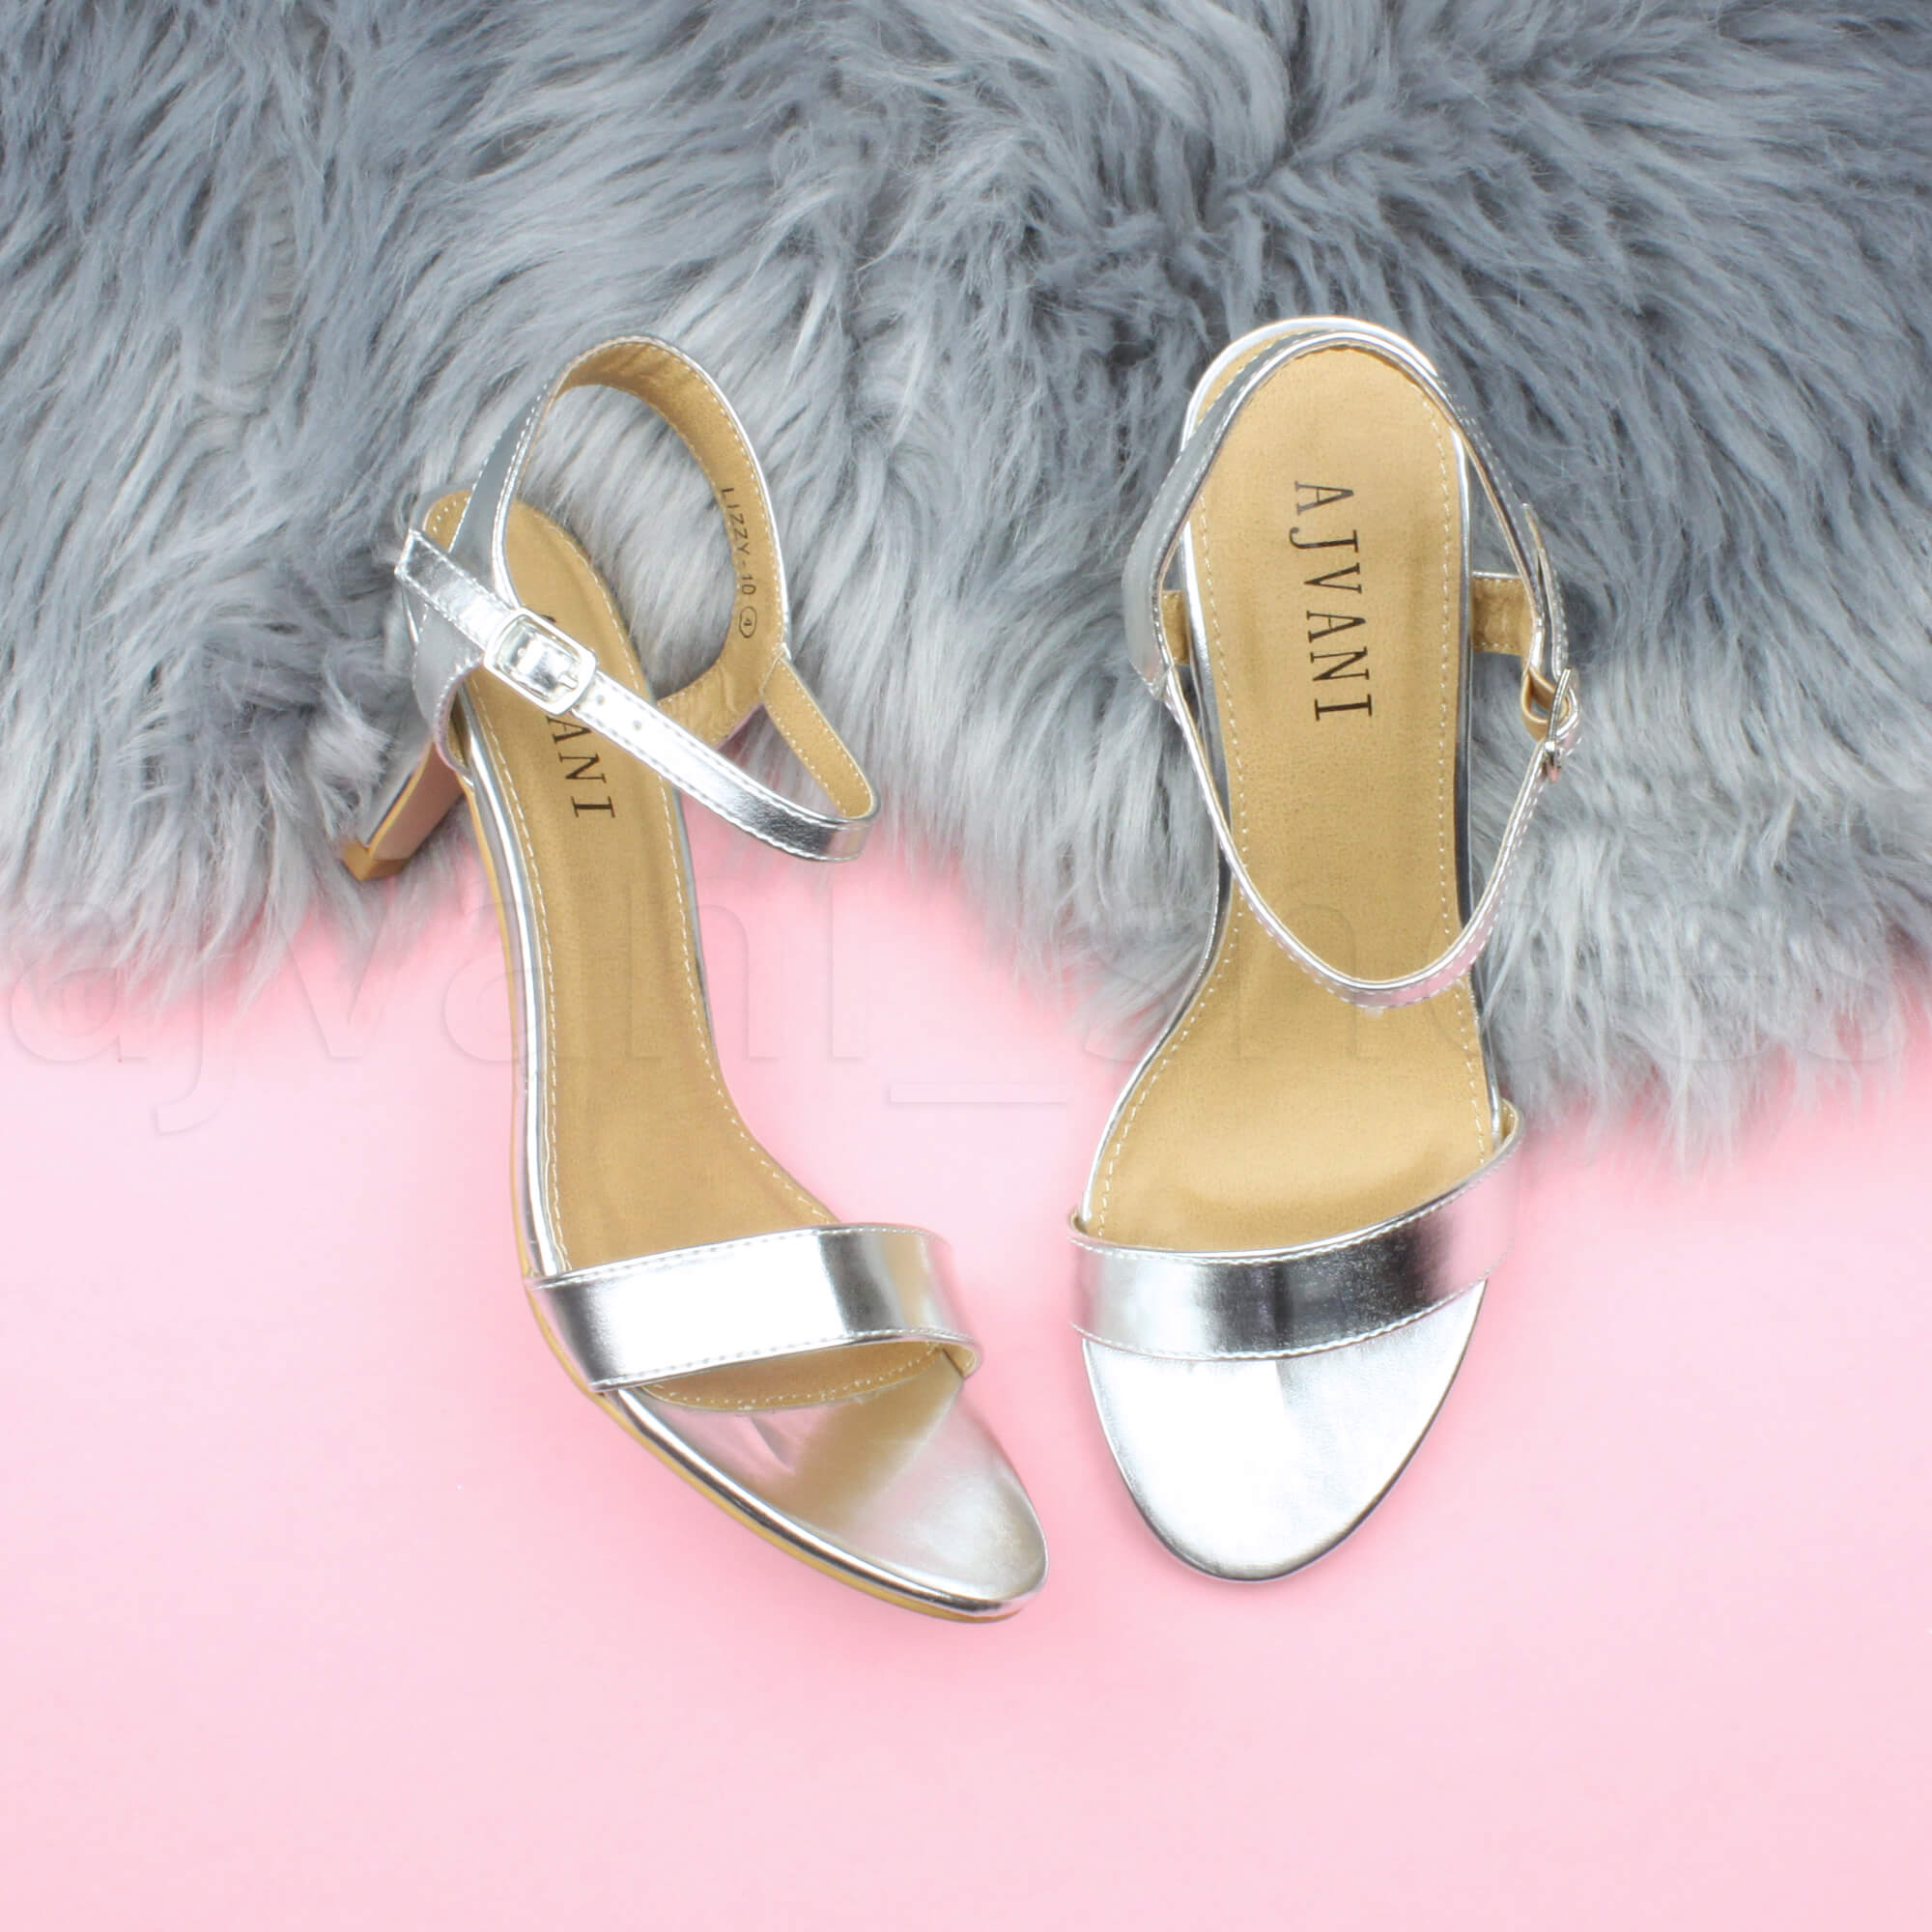 WOMENS-LADIES-HIGH-HEEL-BUCKLE-STRAPPY-BASIC-BARELY-THERE-SANDALS-SHOES-SIZE thumbnail 131